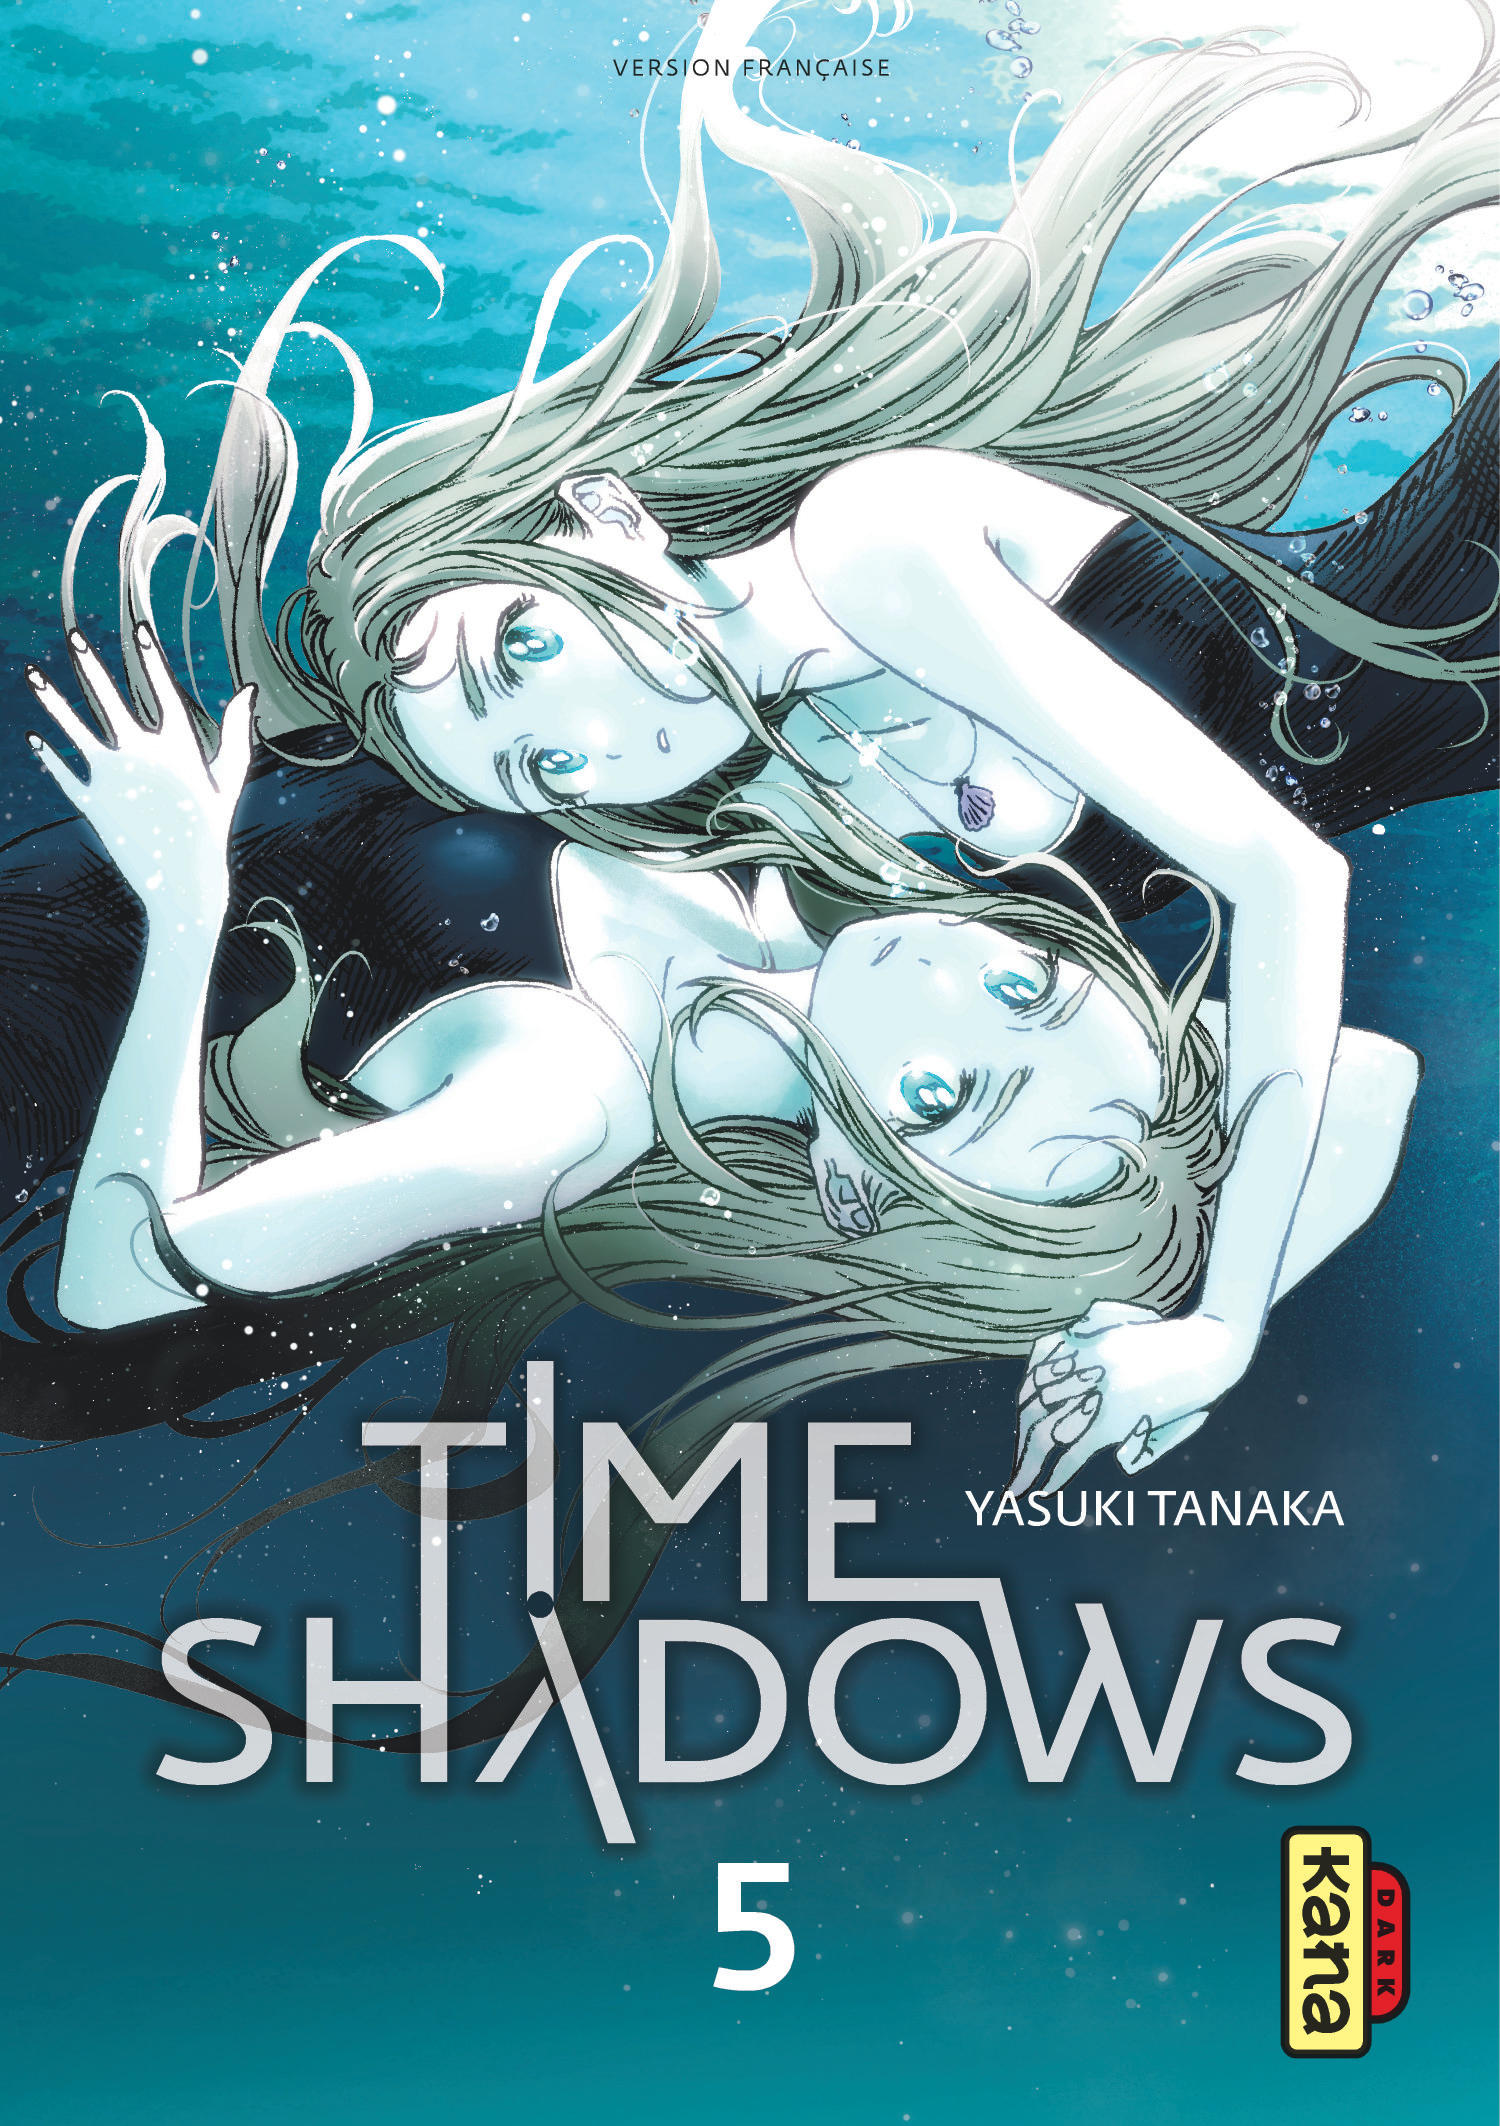 Time Shadows 5